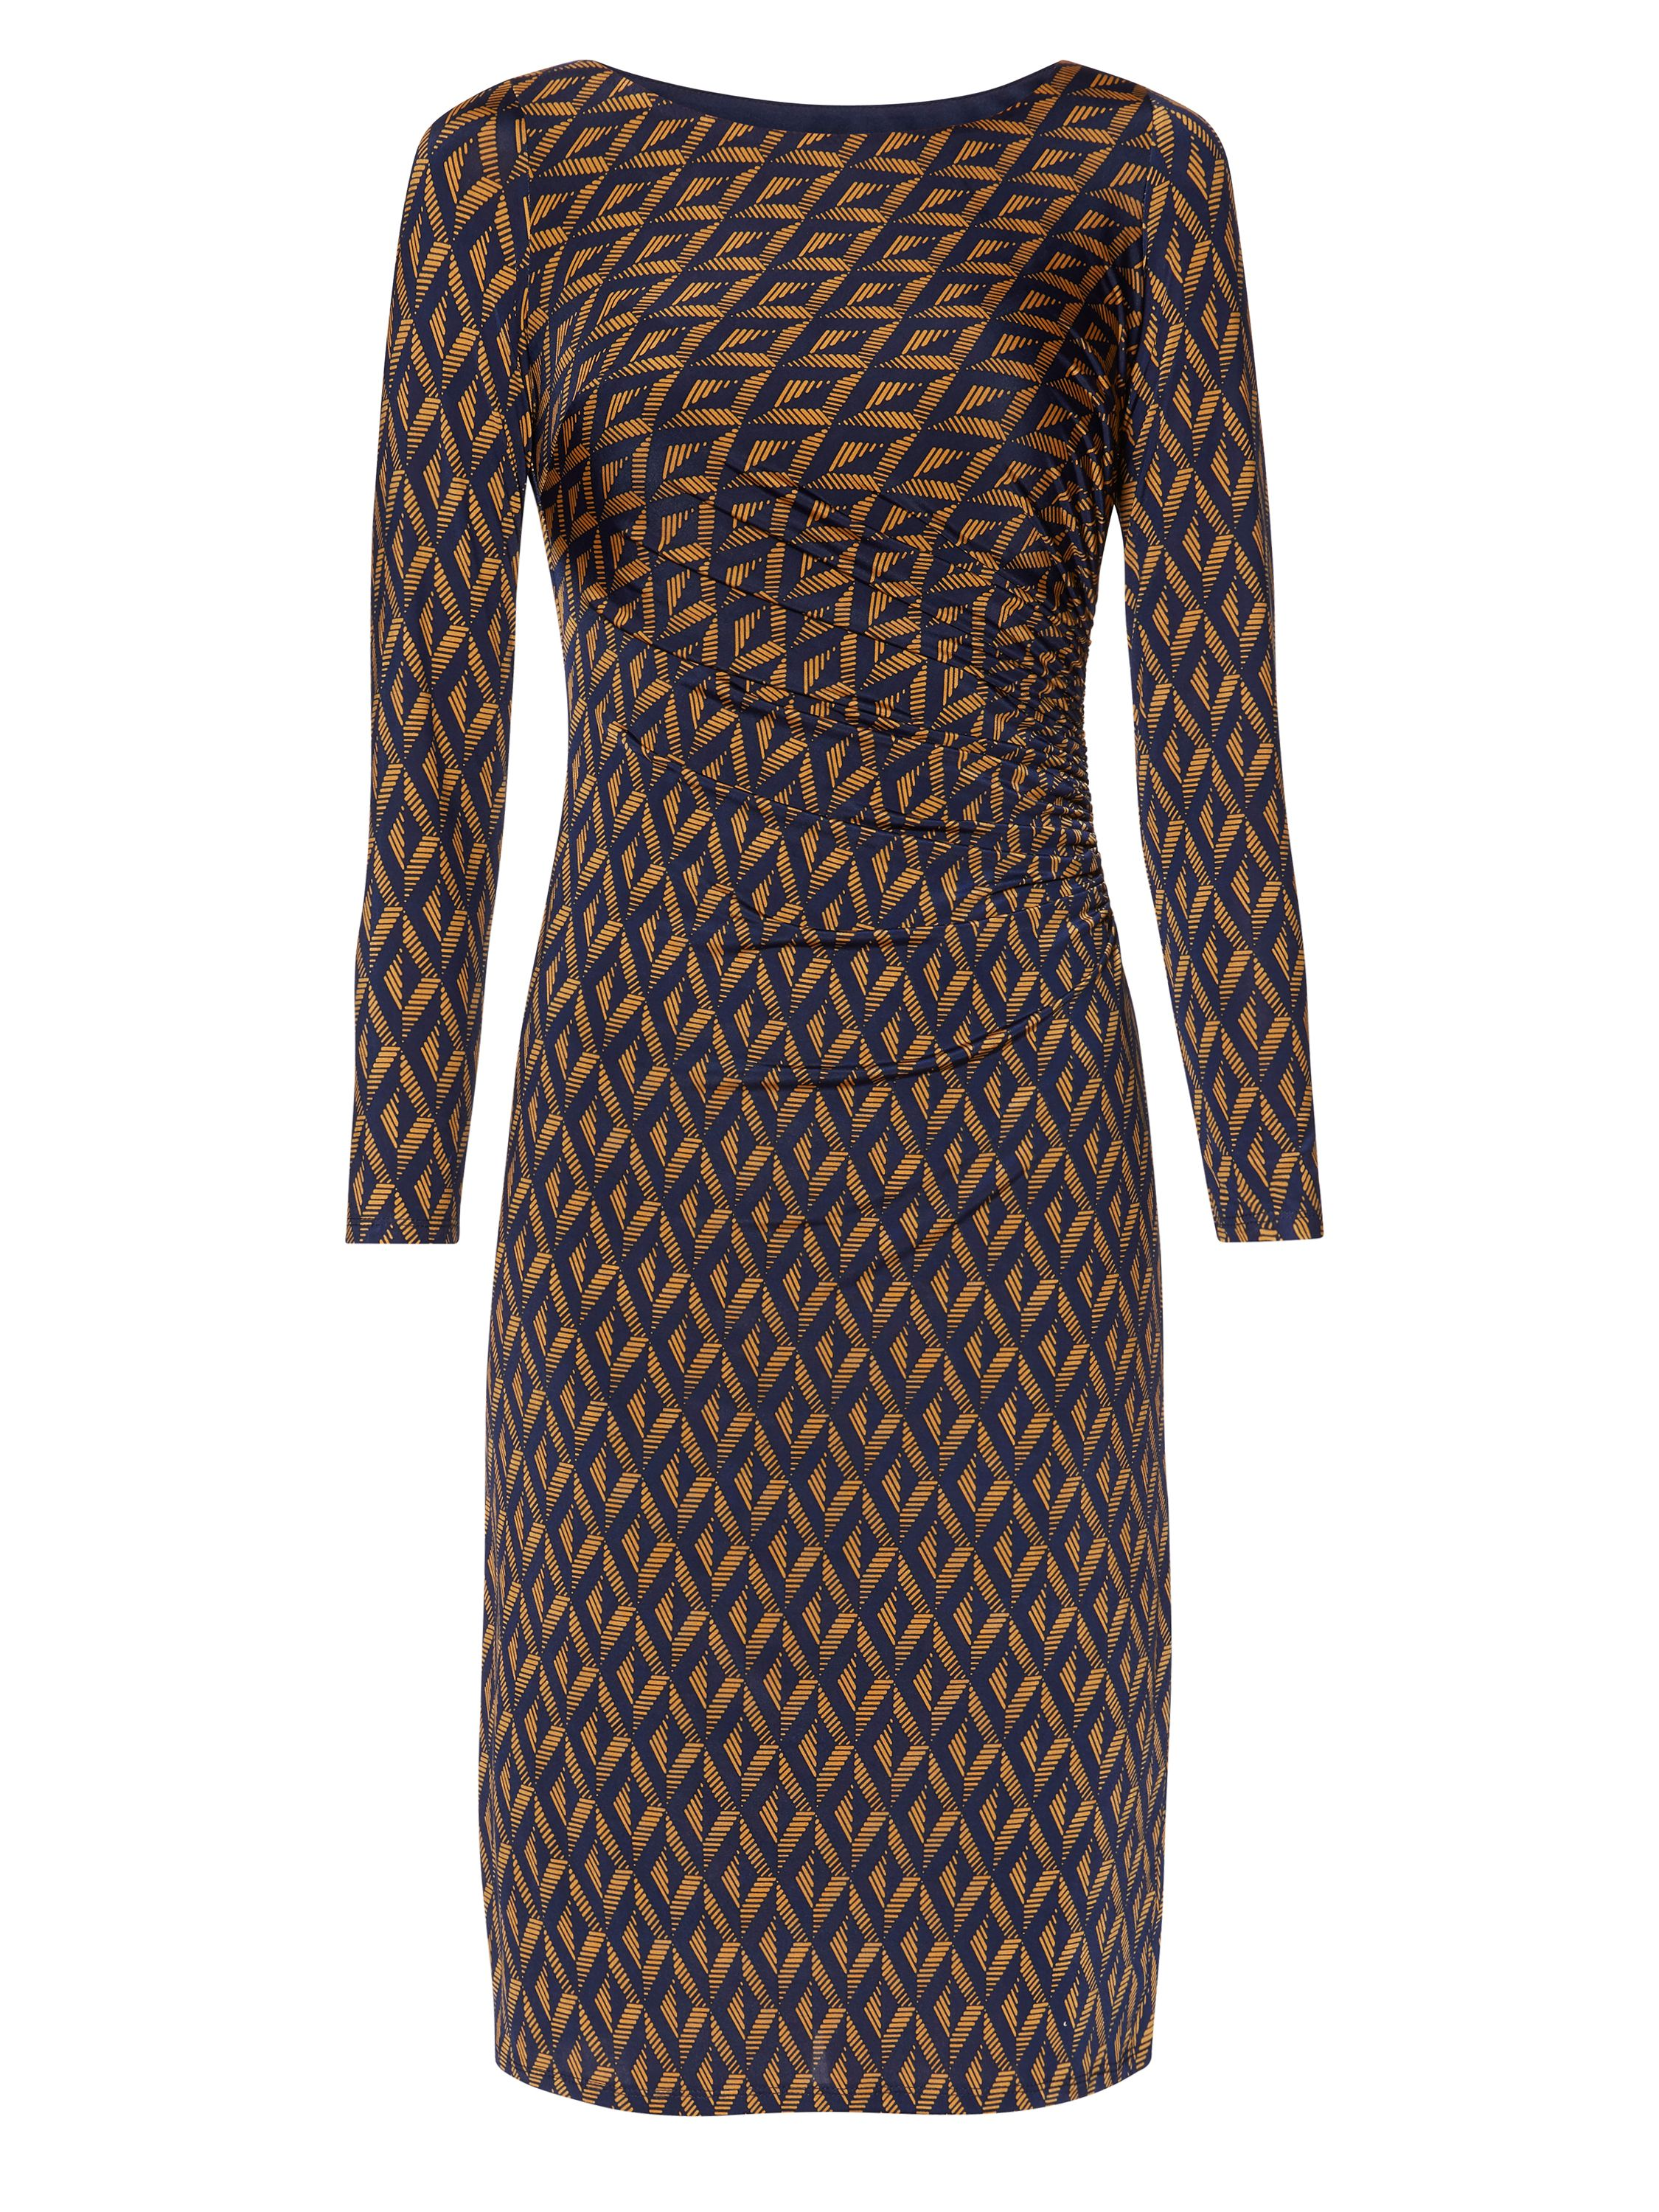 Gina Bacconi Navy Gold Print Jersey Dress, Multi-Coloured